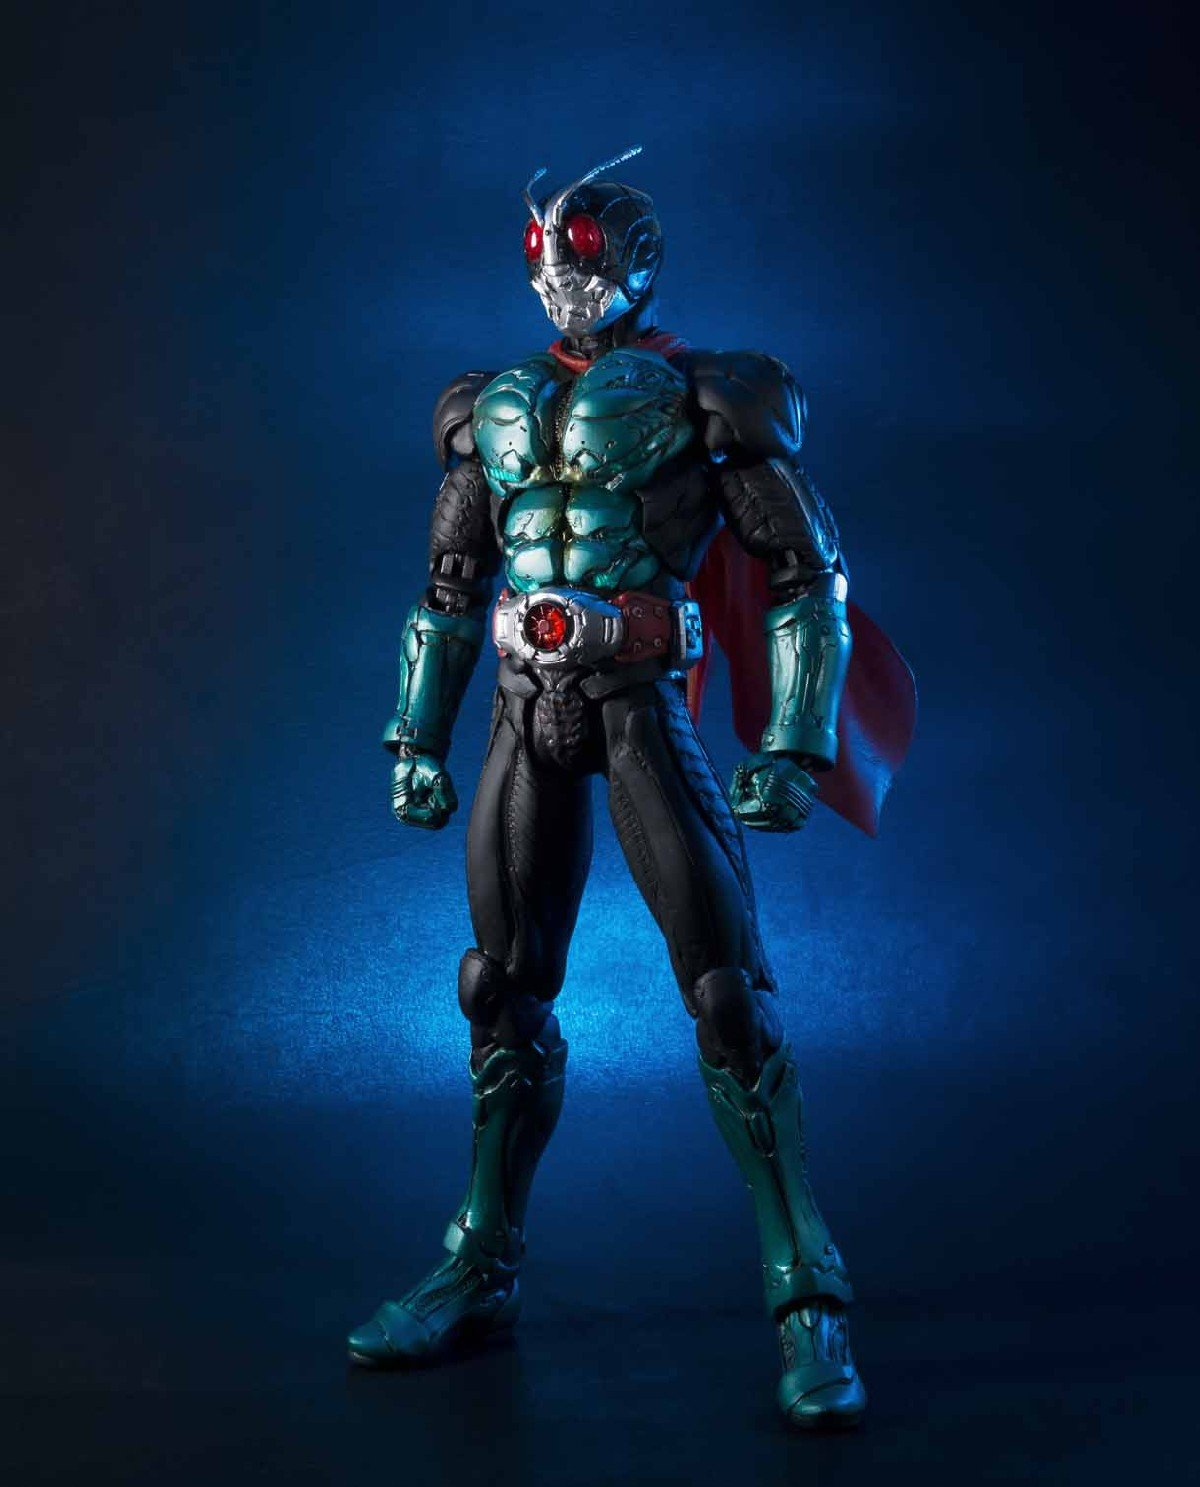 Bandai Tamashii Nations S.I.C Kamen Rider 2 Action Figure Bluefin Distribution Toys BAN84378